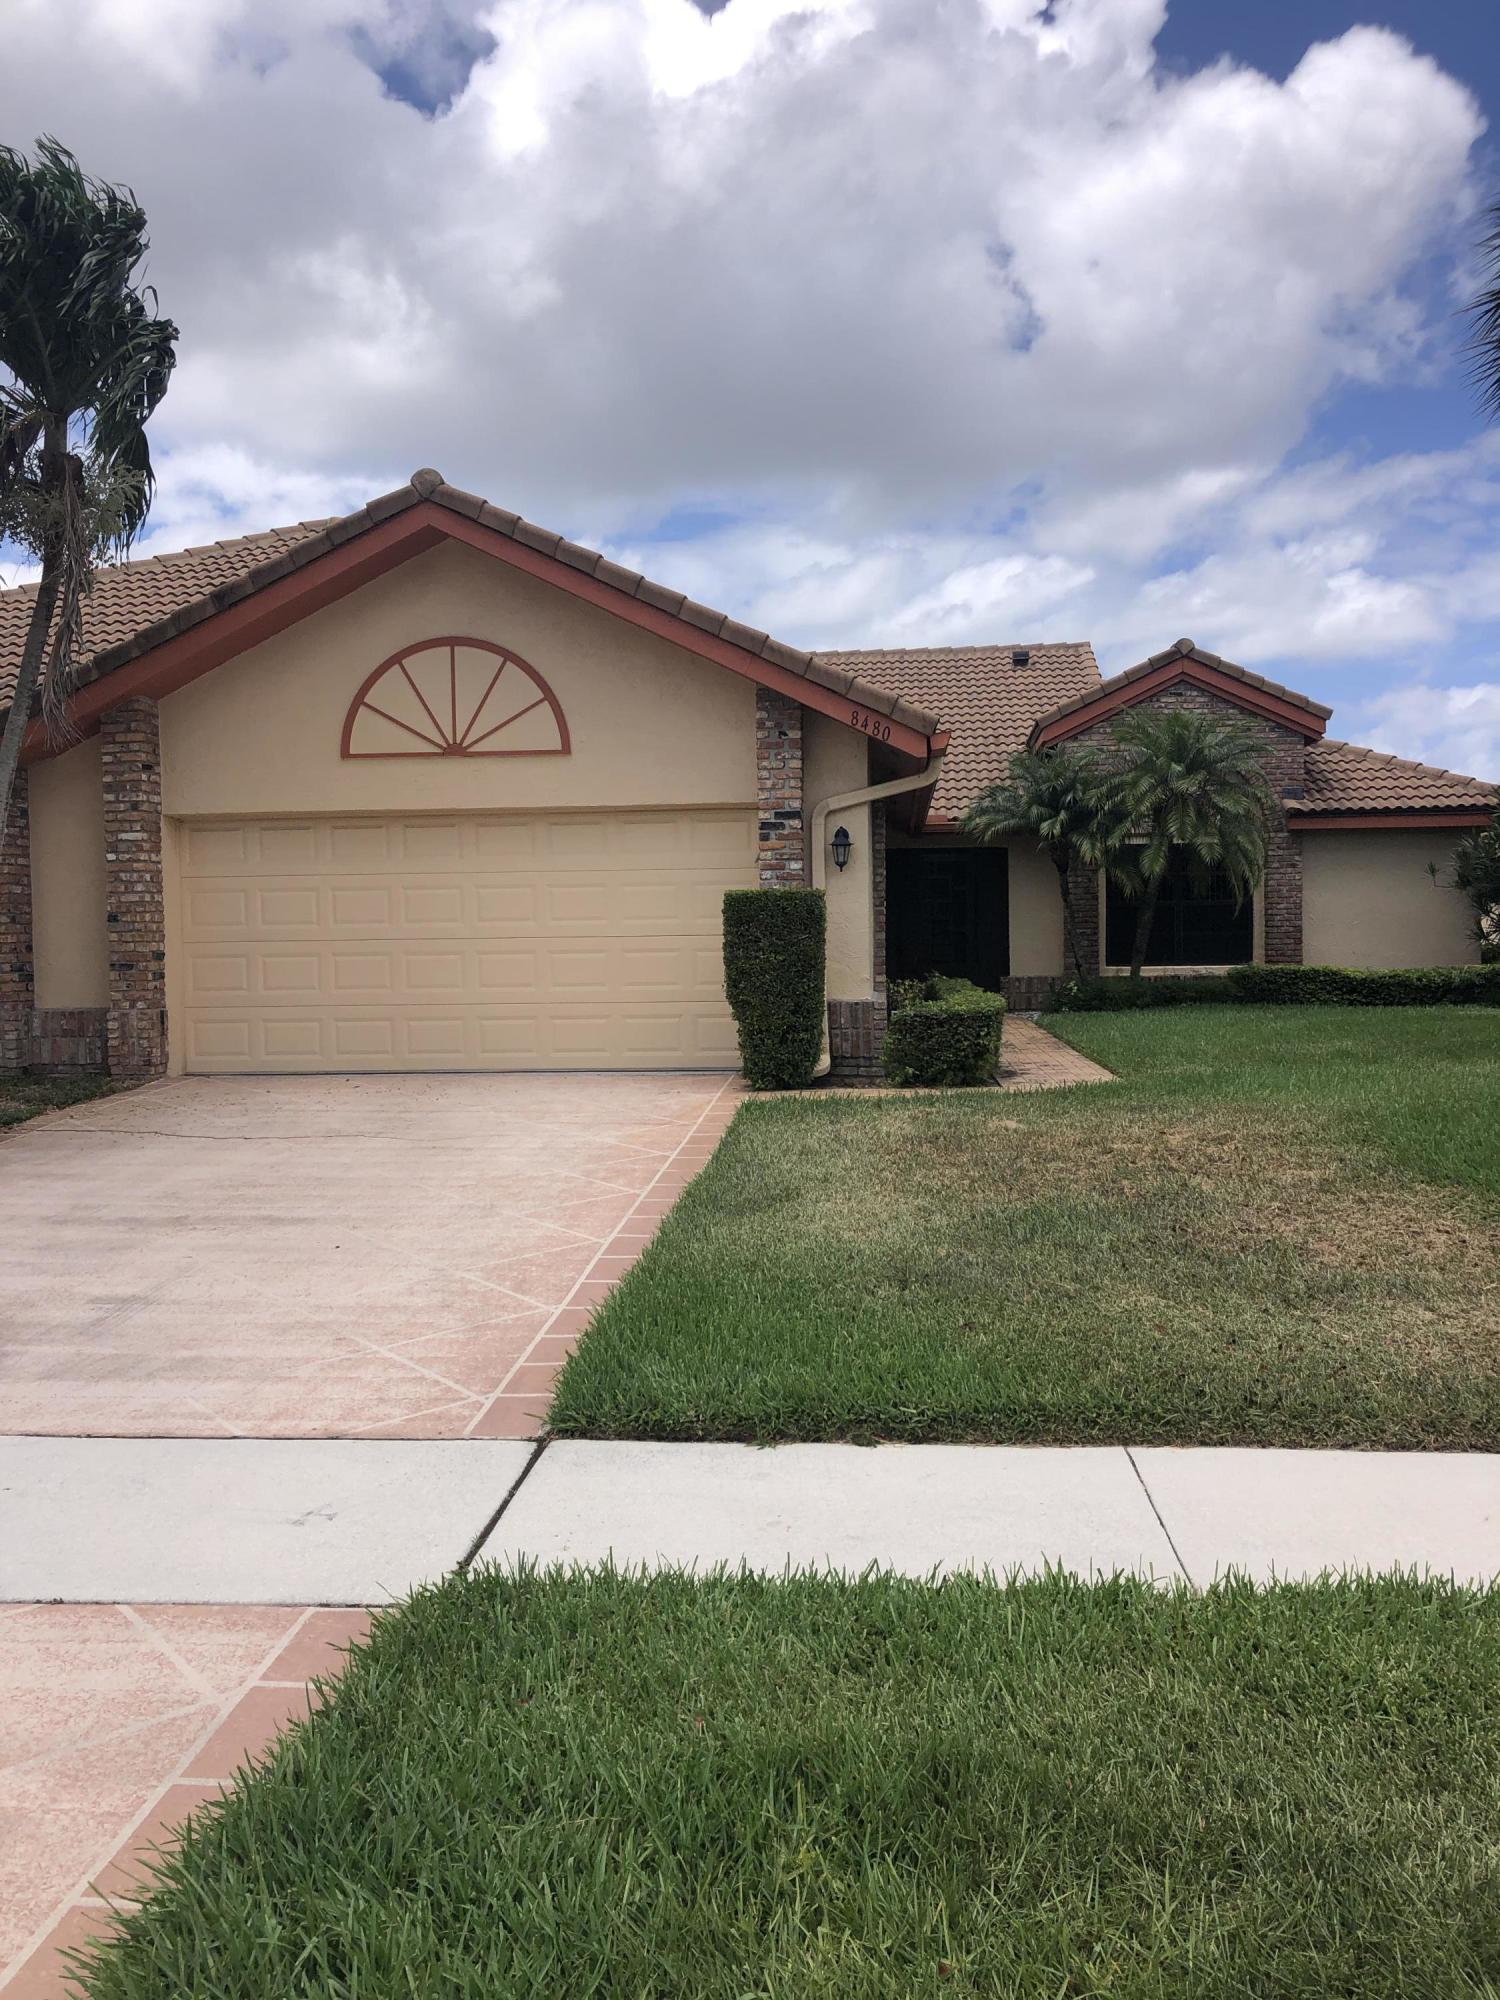 8480  Heather Place  For Sale 10716219, FL